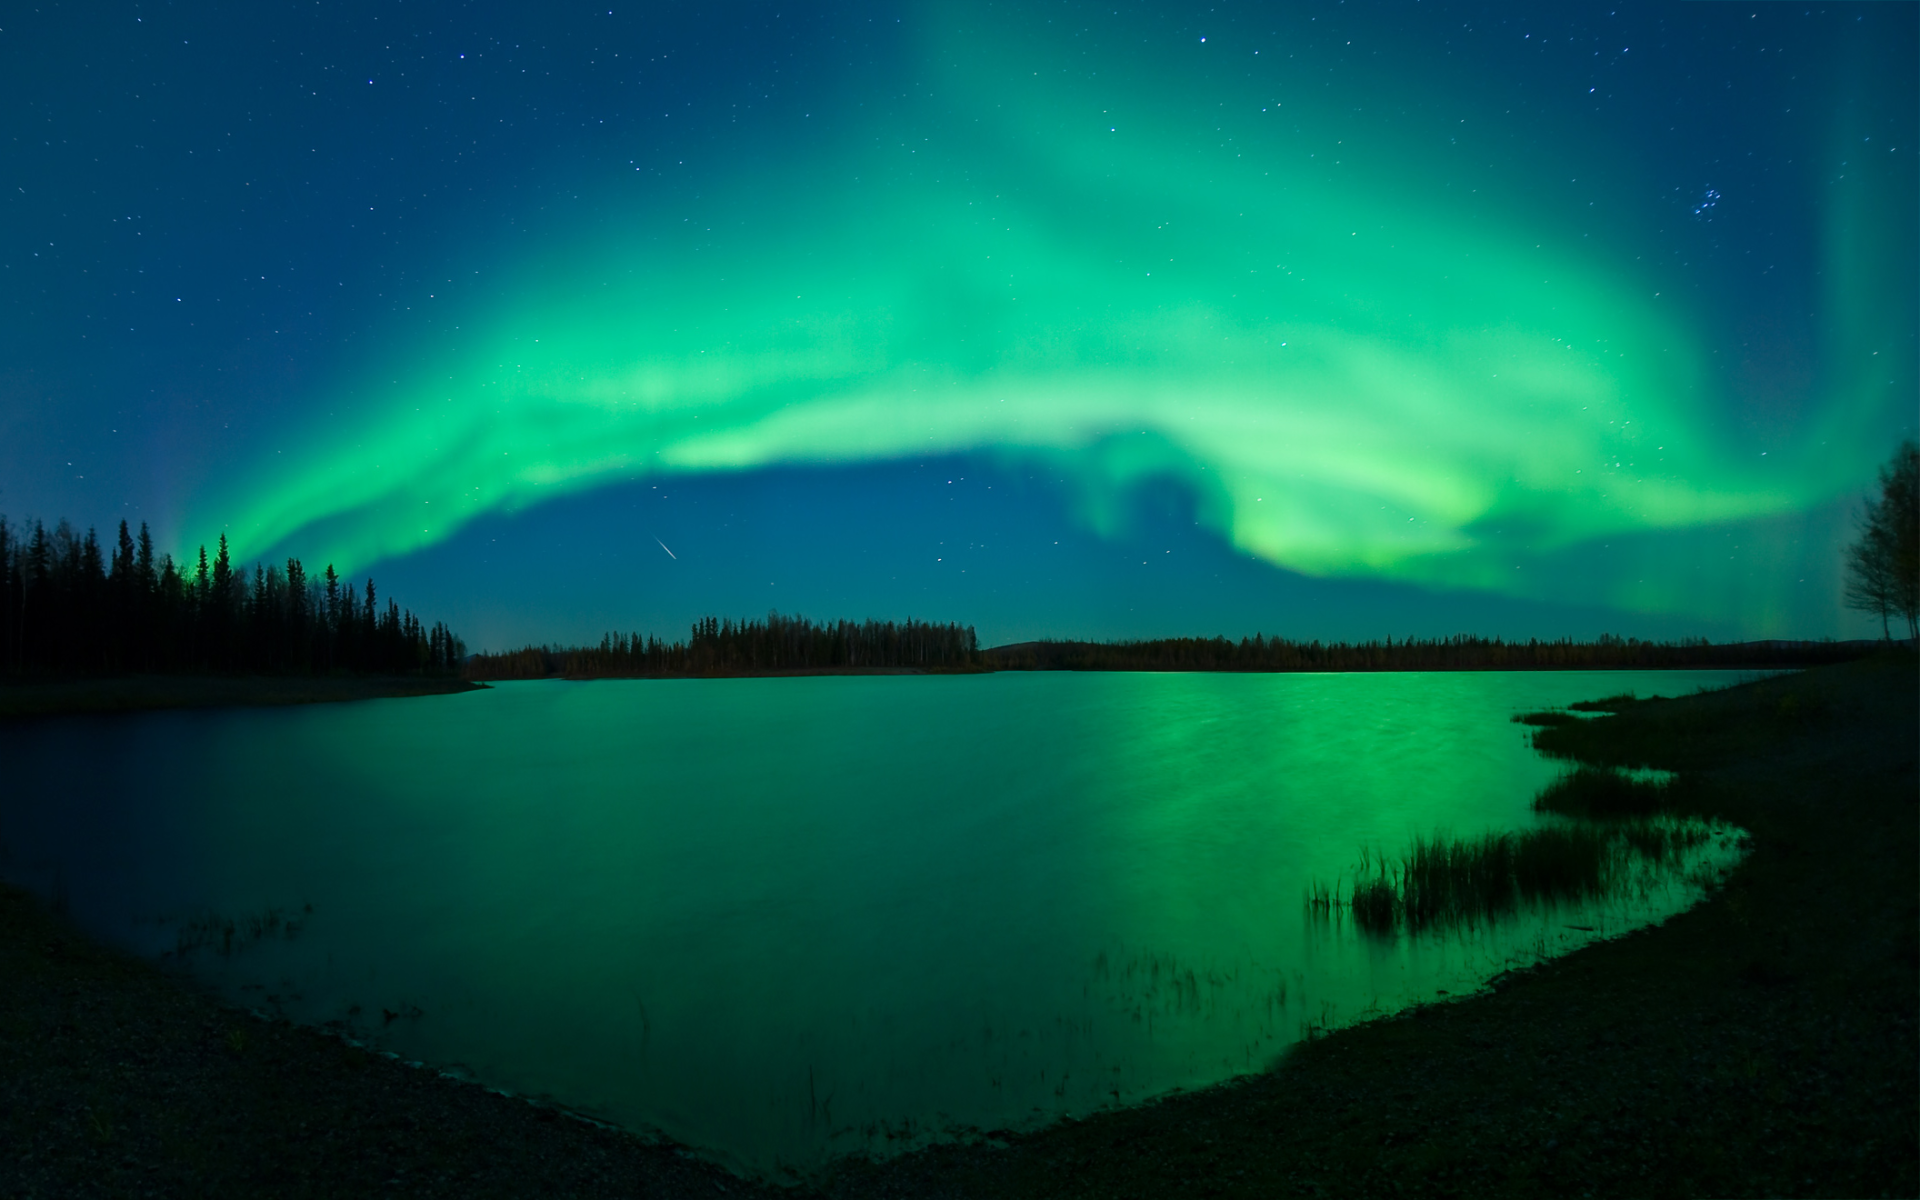 Aurora borealis full hd wallpaper and background image for Sfondi 1080x1920 full hd